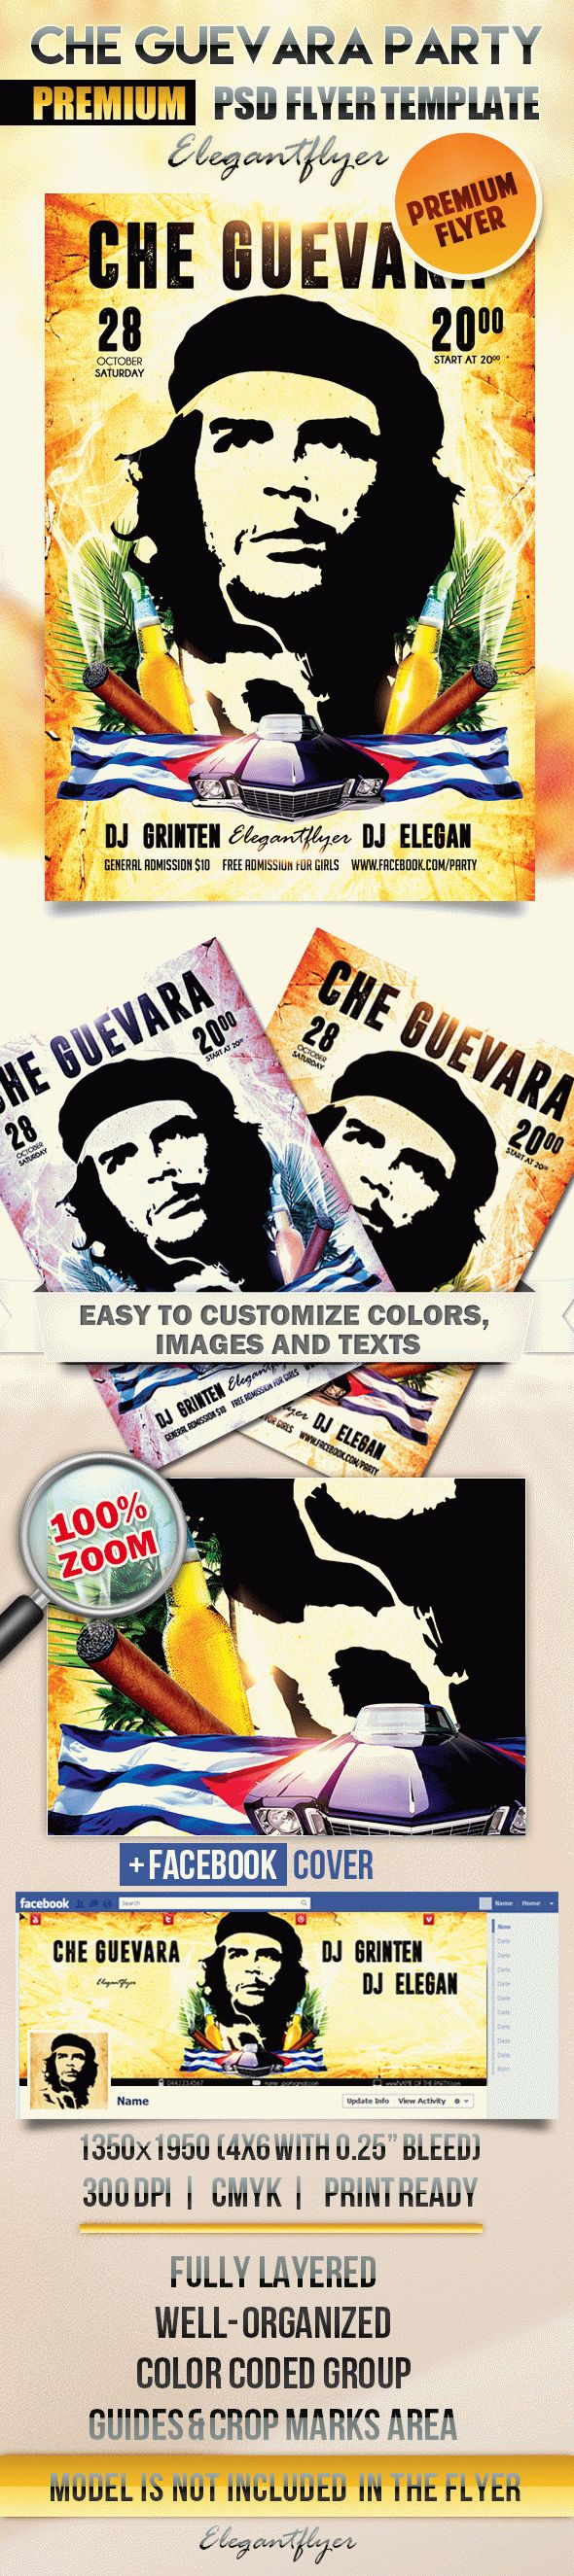 Che Guevara party – Flyer PSD Template + Facebook Cover